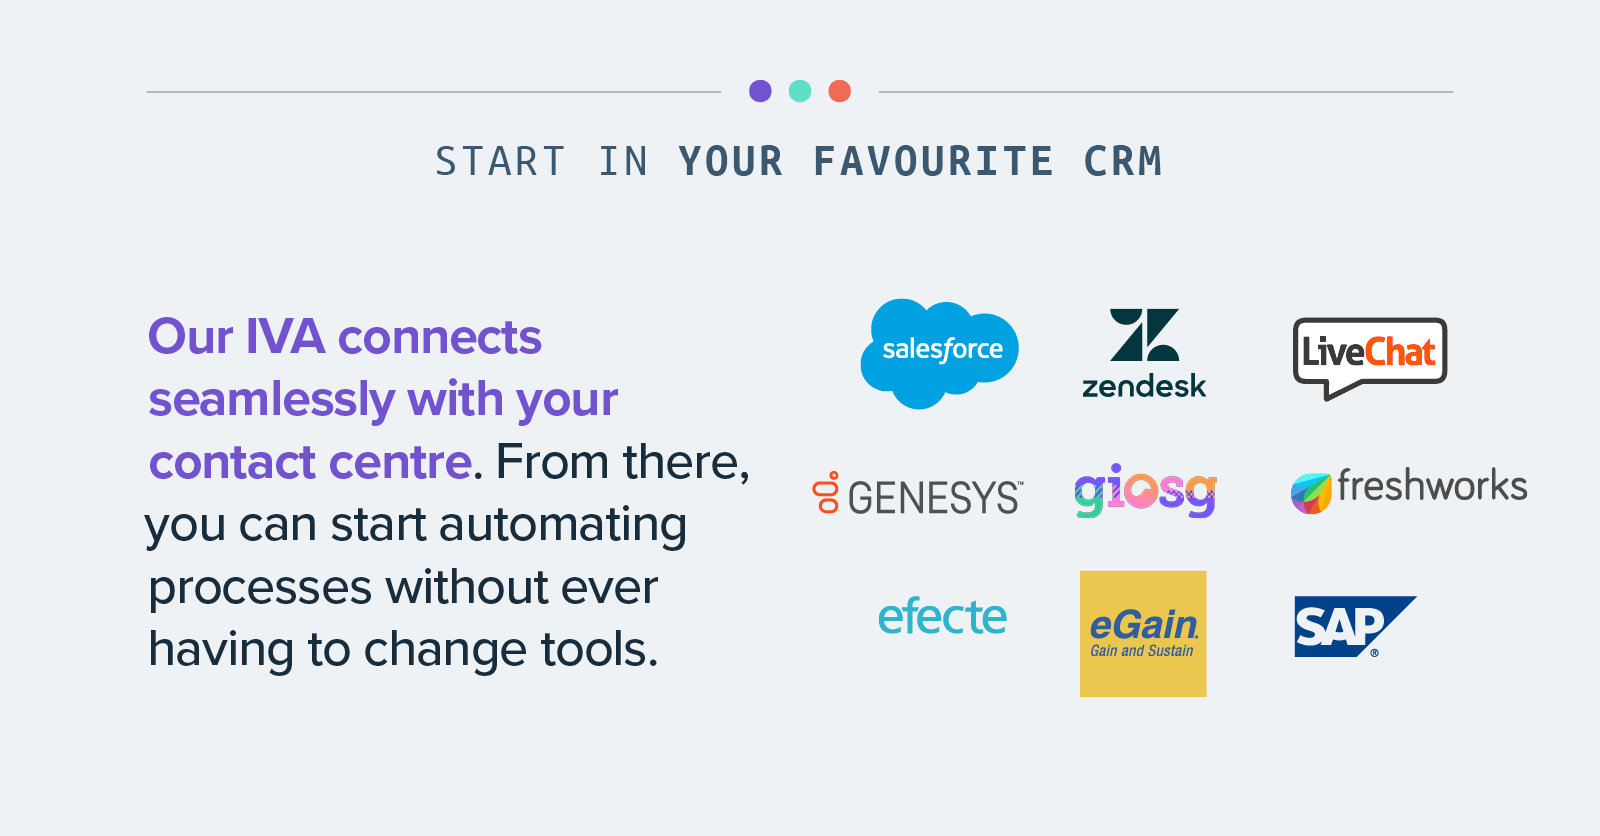 Start in your favourite CRM - Our IVA connects seamlessly with your contact centre. From there, you can start automating processes without ever having to change tools.